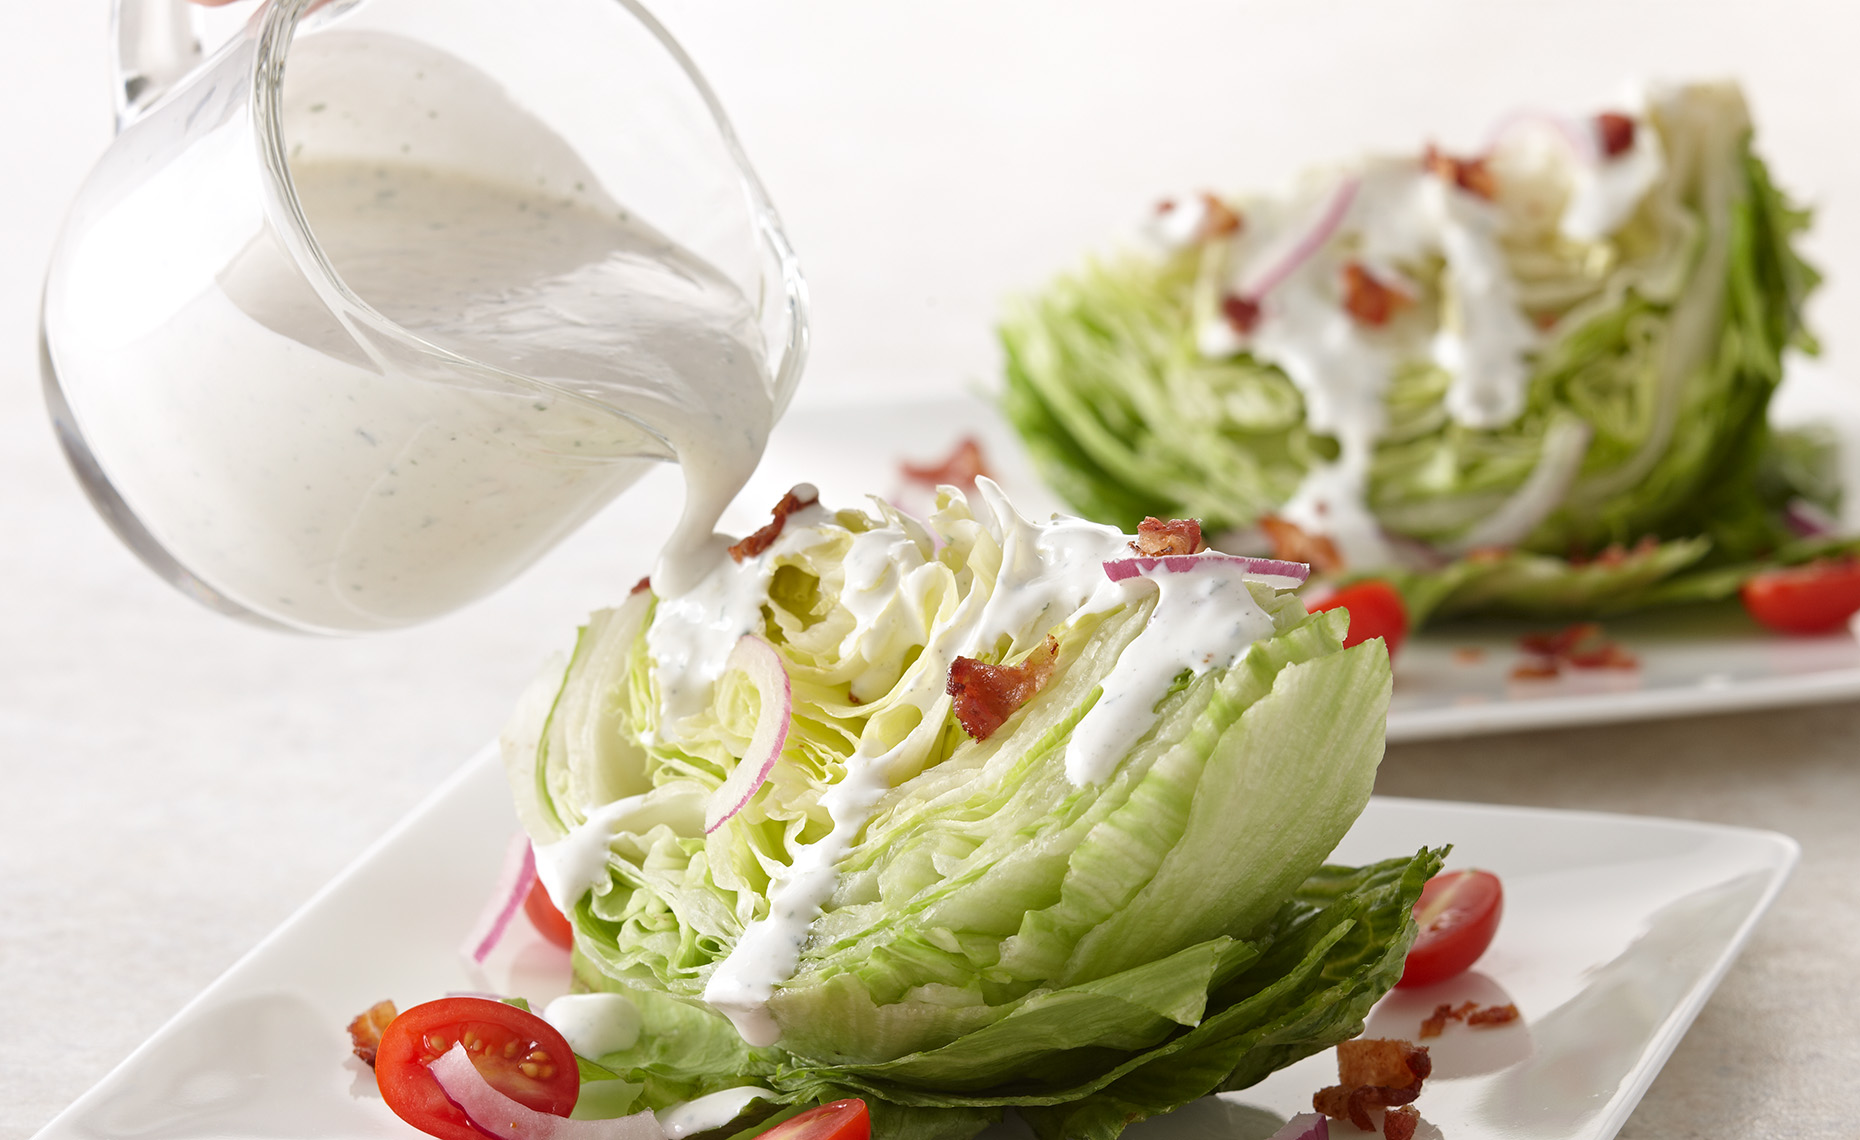 Food Photographer, Vegetable photography, Fruit photography | Pohuski Studios,  Ranch Dressing Lettuce